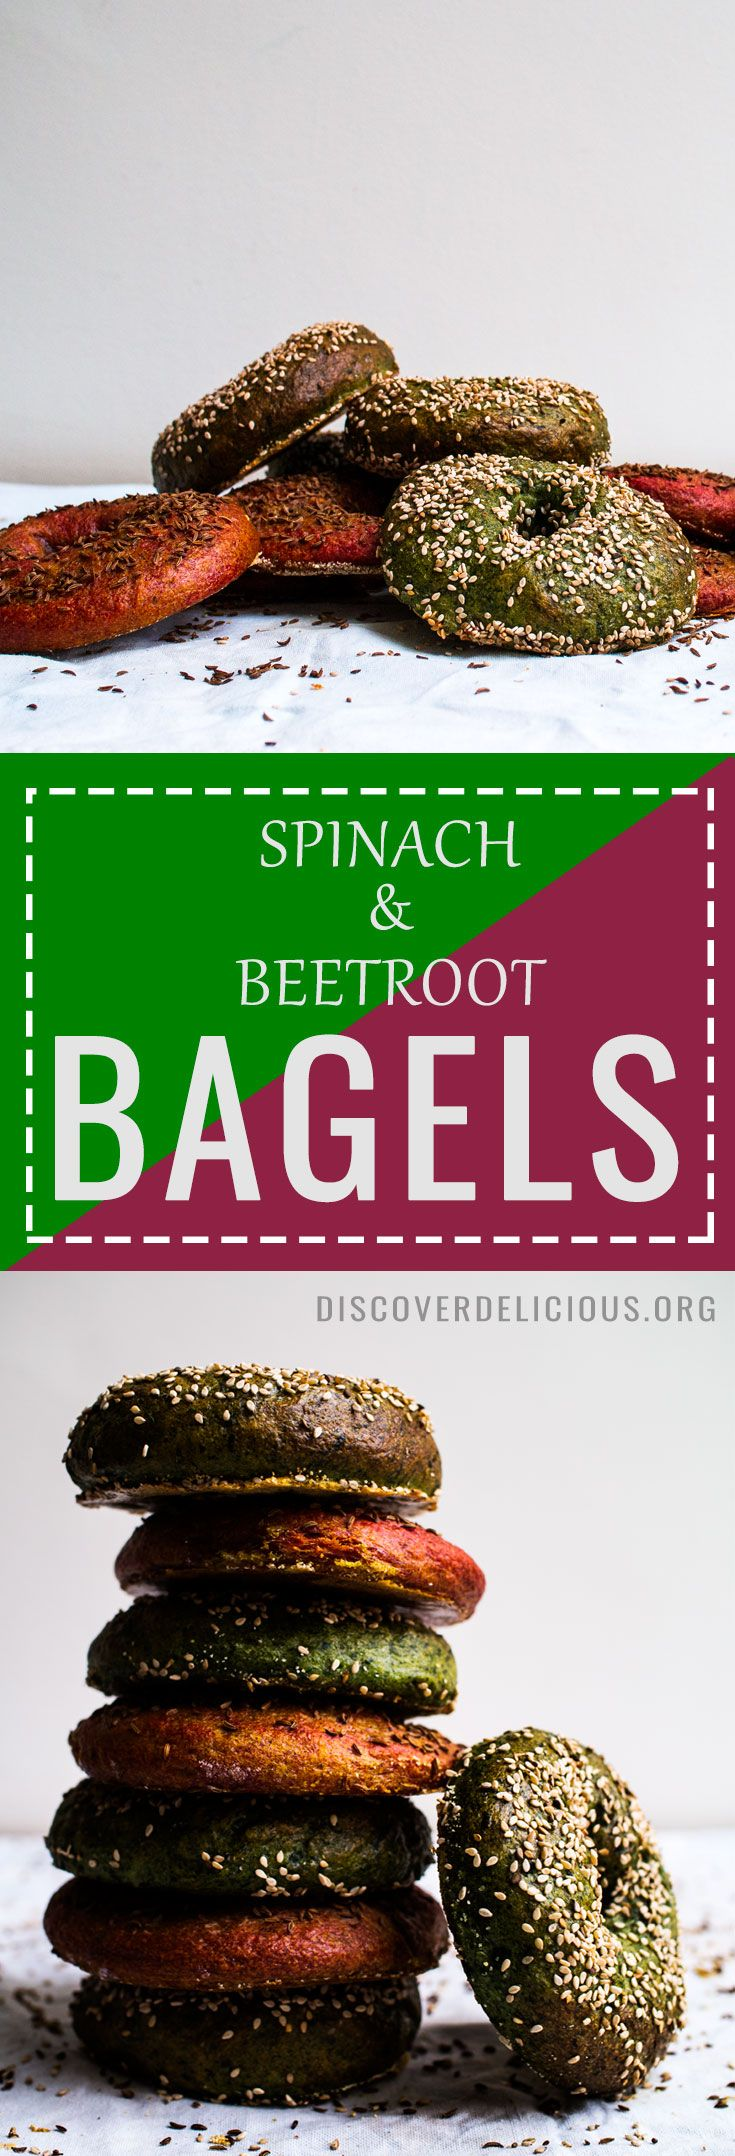 Spinach & Beetroot BAGELS!Chewy + malty in taste, vibrant and beautiful to look at! Vegan too. | Discover Delicious | discoverdelicious.org | #bagel #bread #baking #recipes